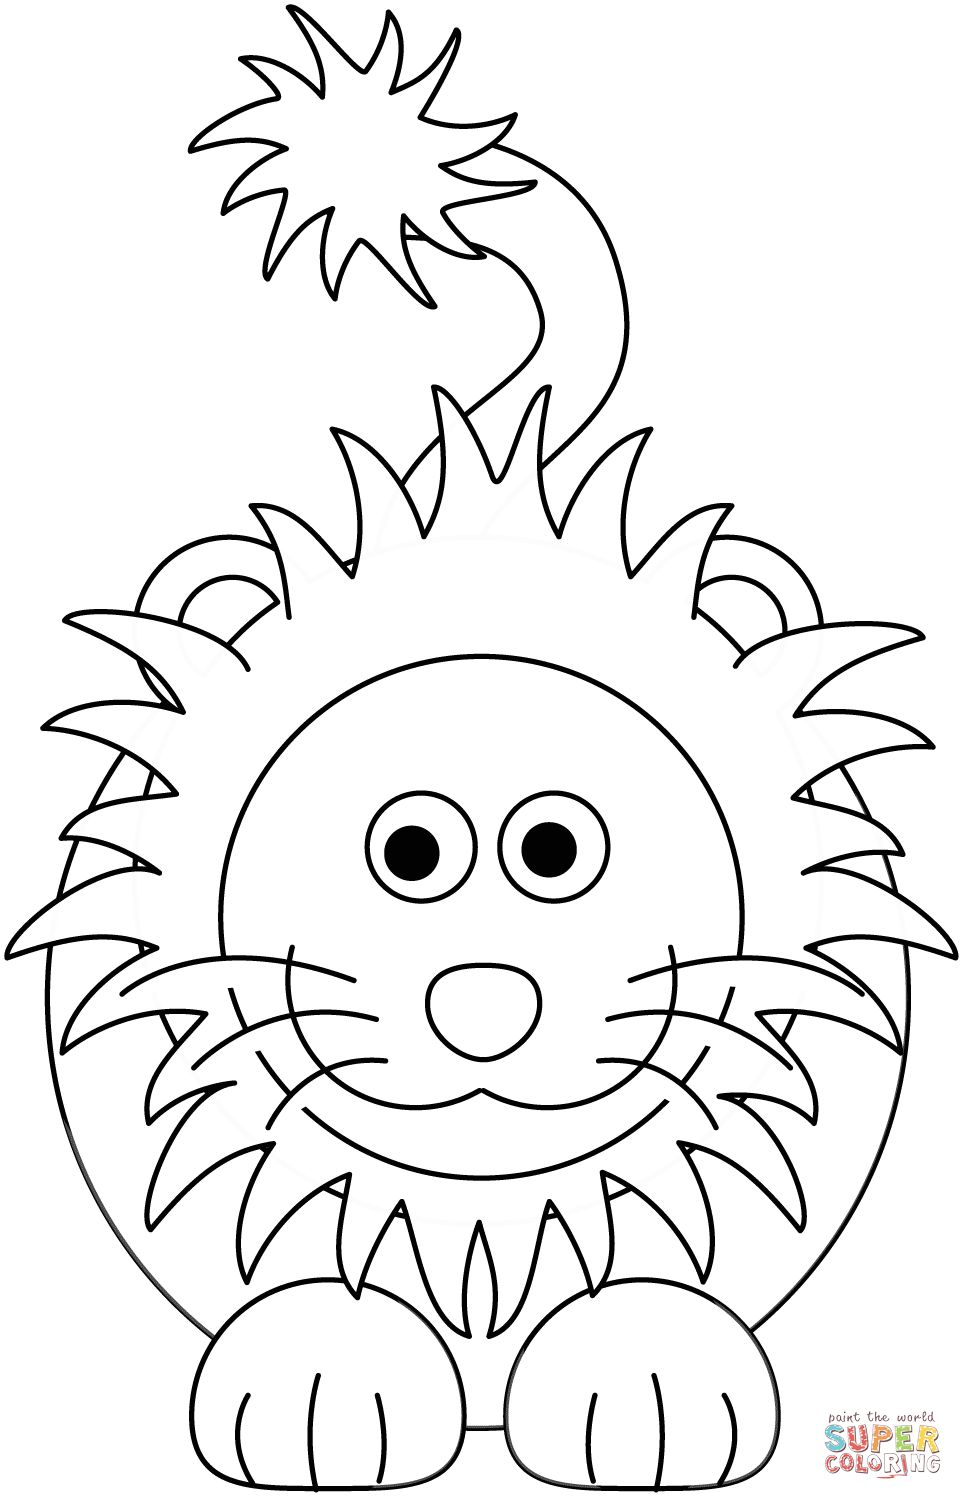 colouring images of lion lion animals coloring pages for kids printable free images of lion colouring